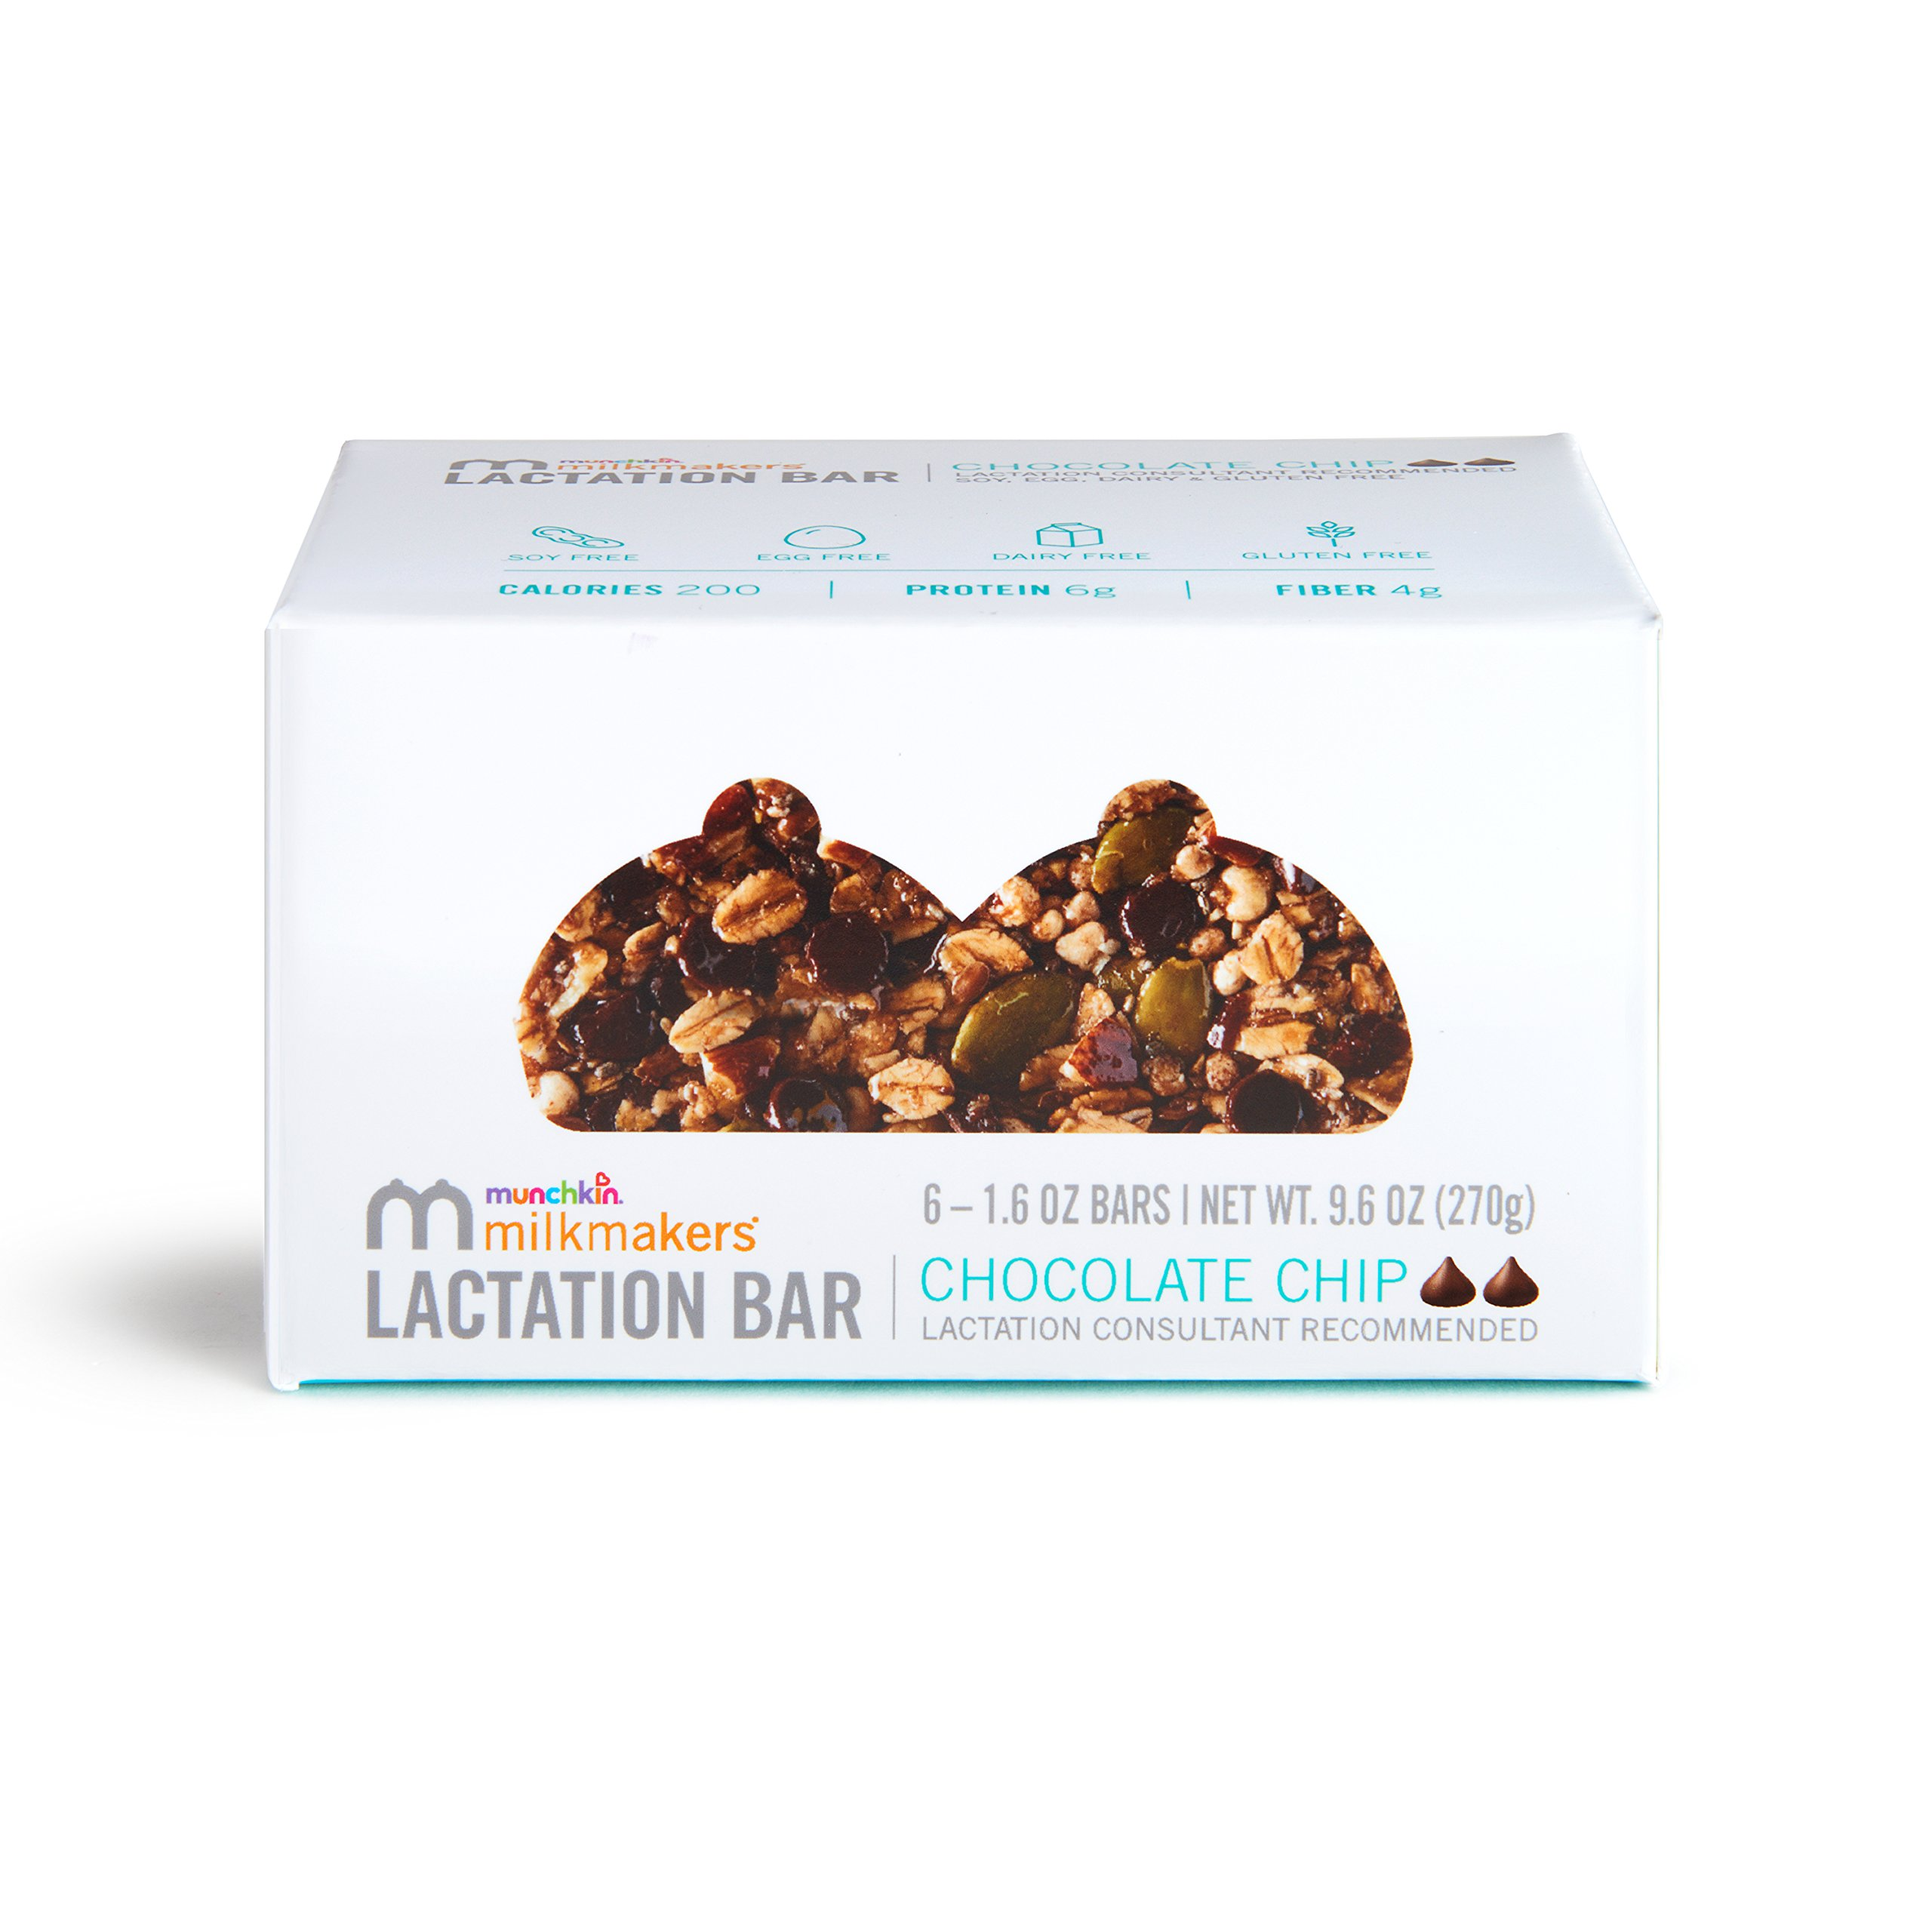 Milkmakers Lactation Bars, Chocolate Chip, 6 Count by Munchkin